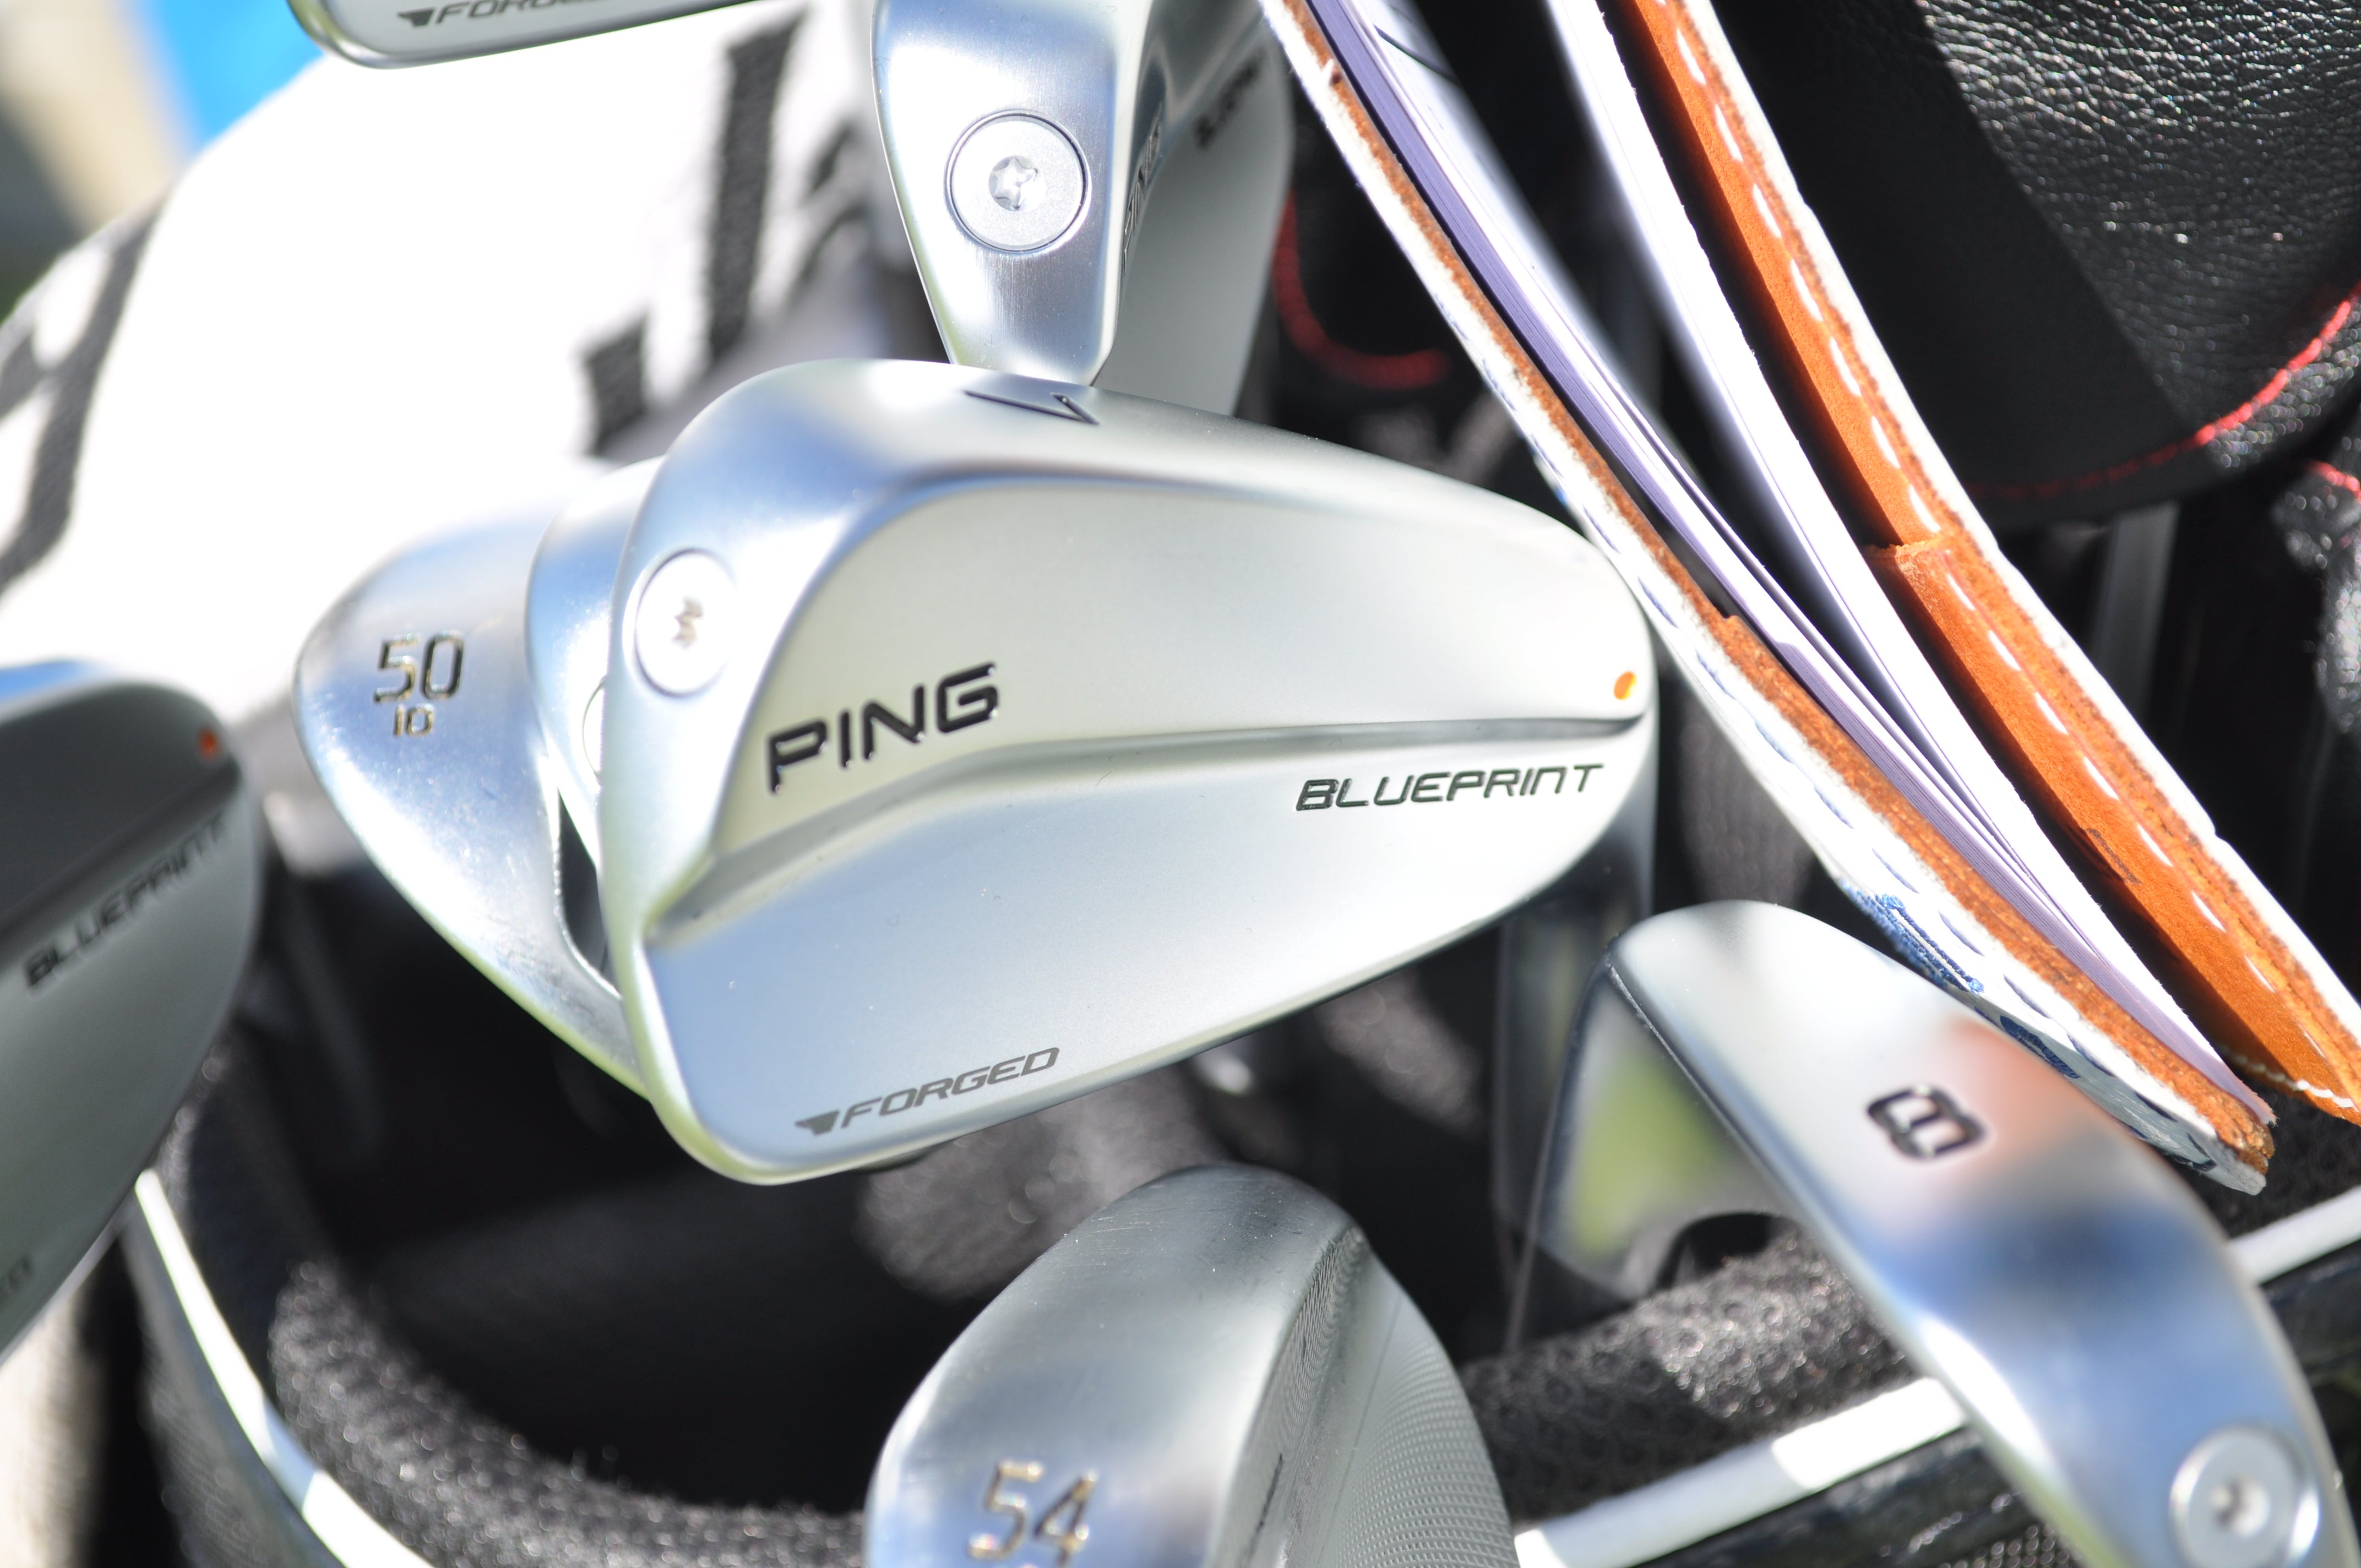 Kyle Jones' Ping Blueprint irons remain a Tour-only prototype.